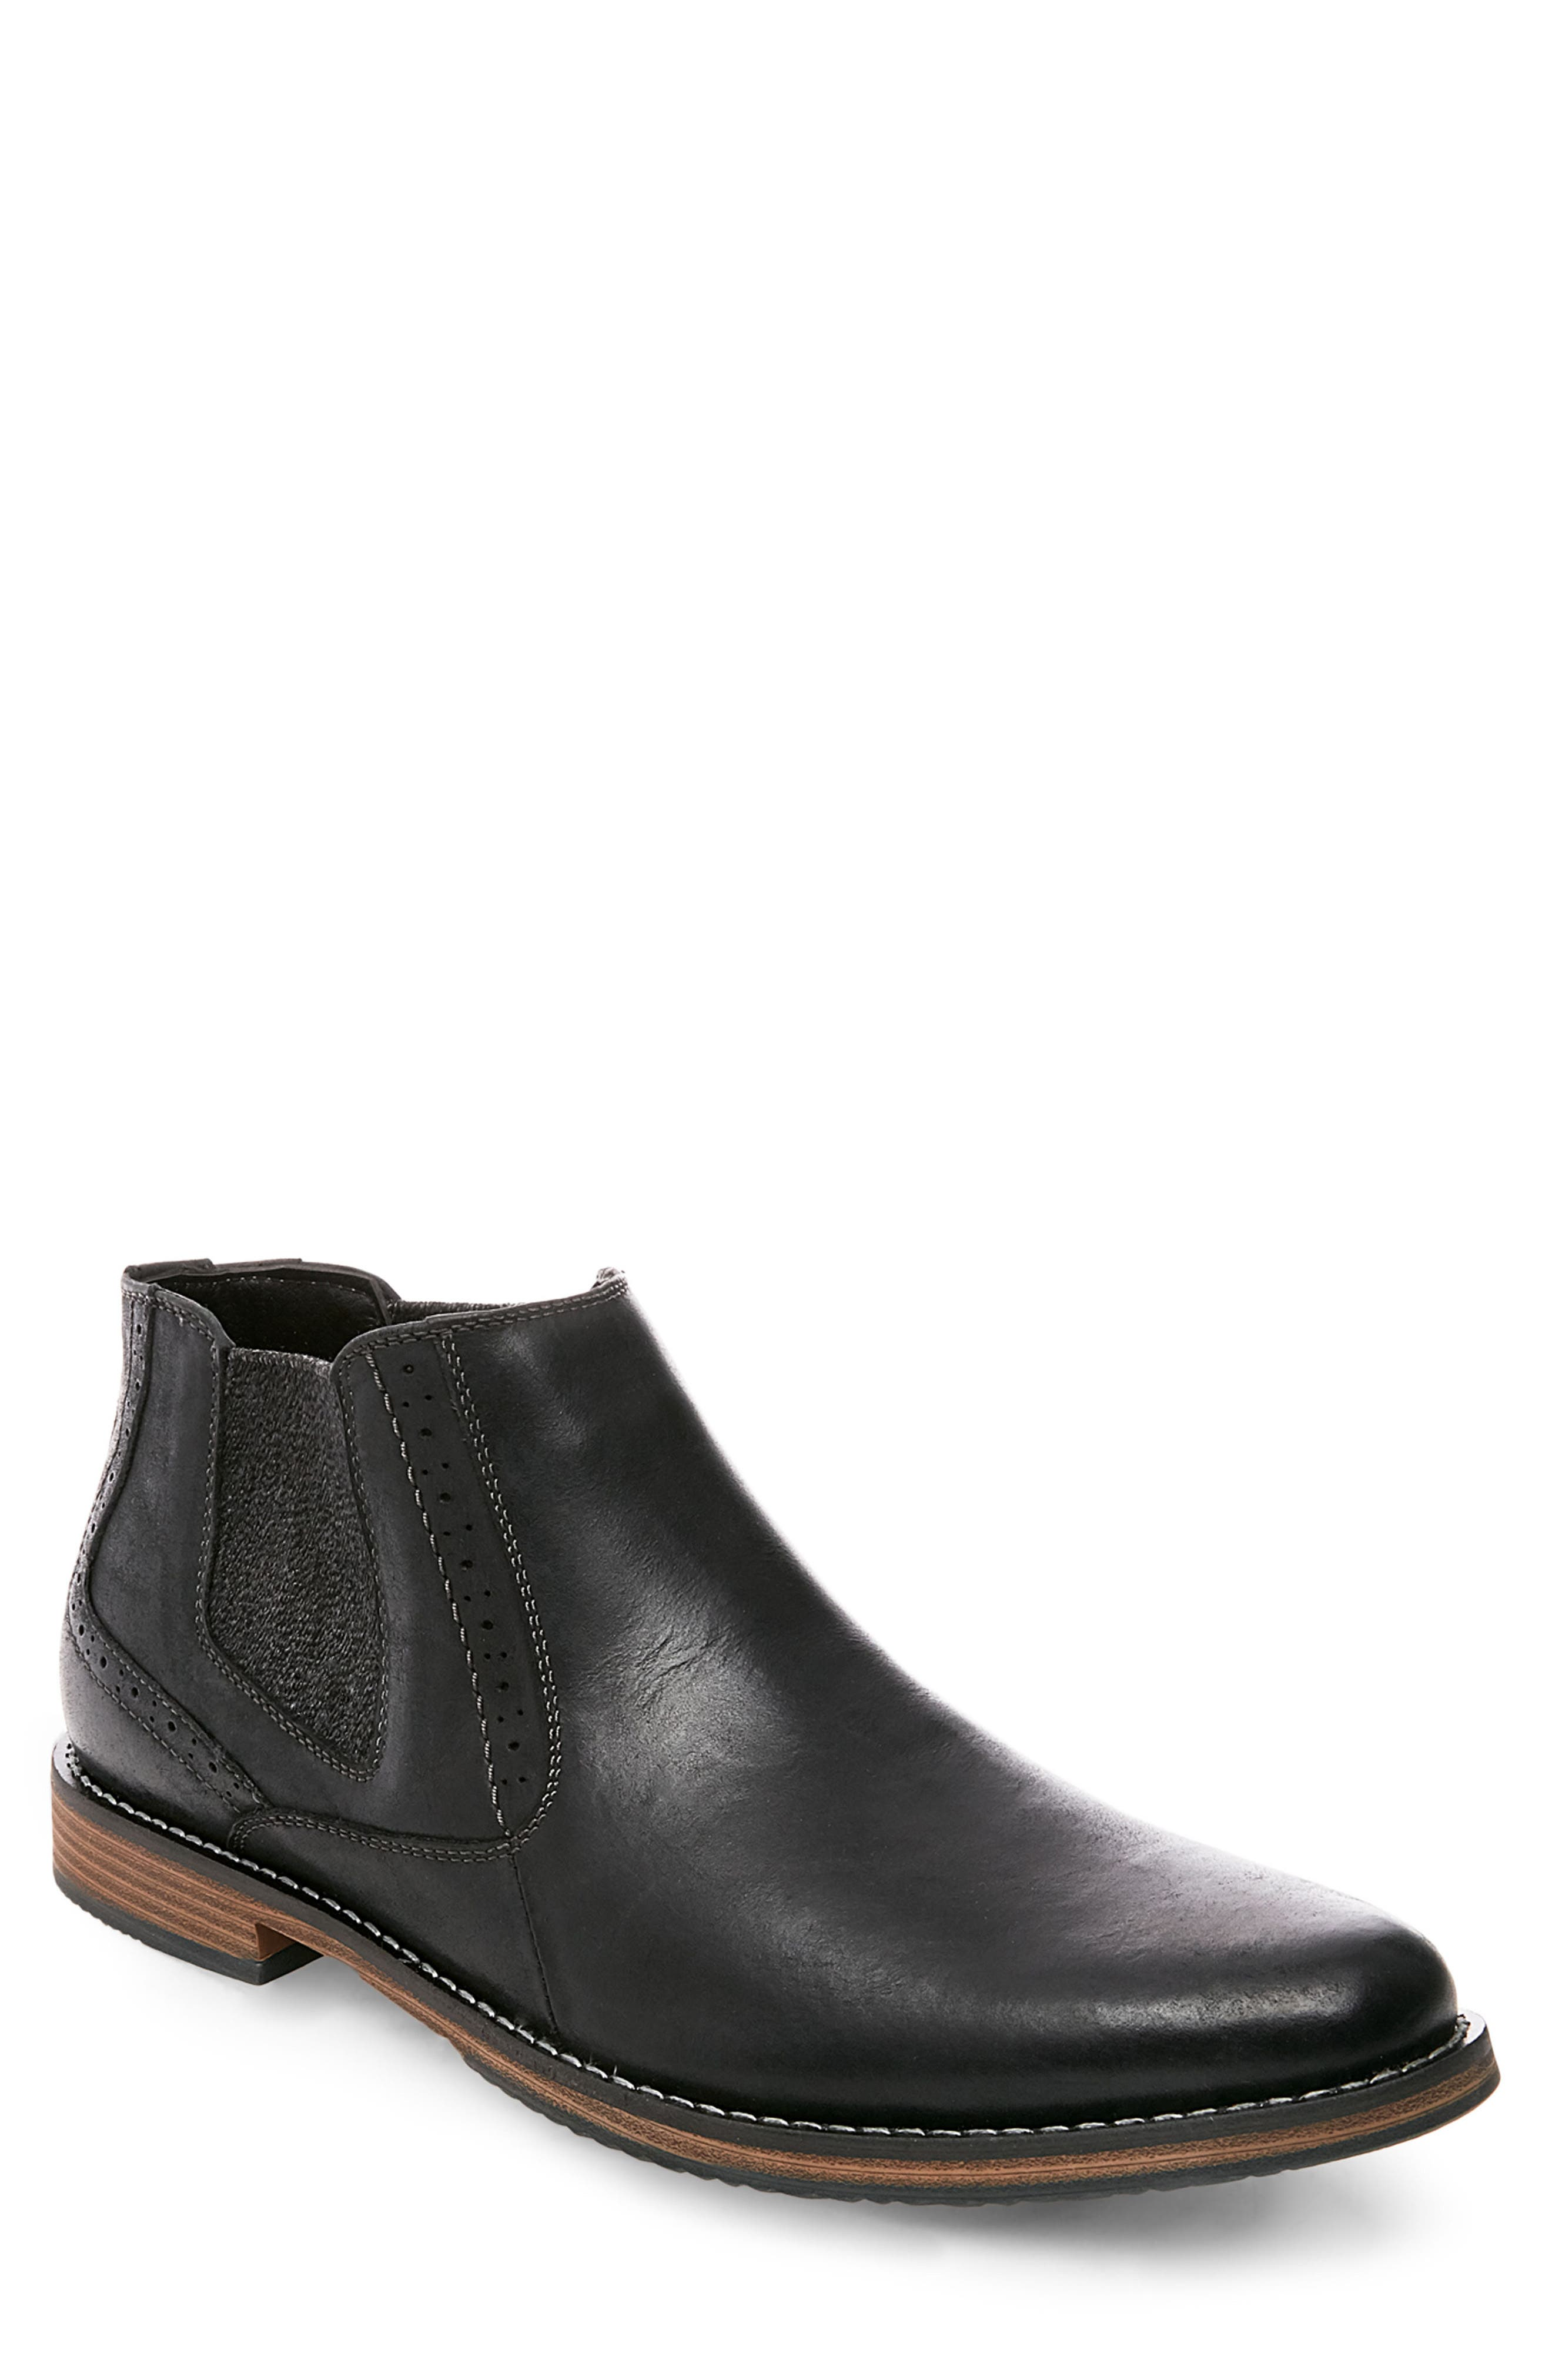 Paxton Chelsea Boot,                         Main,                         color, 001